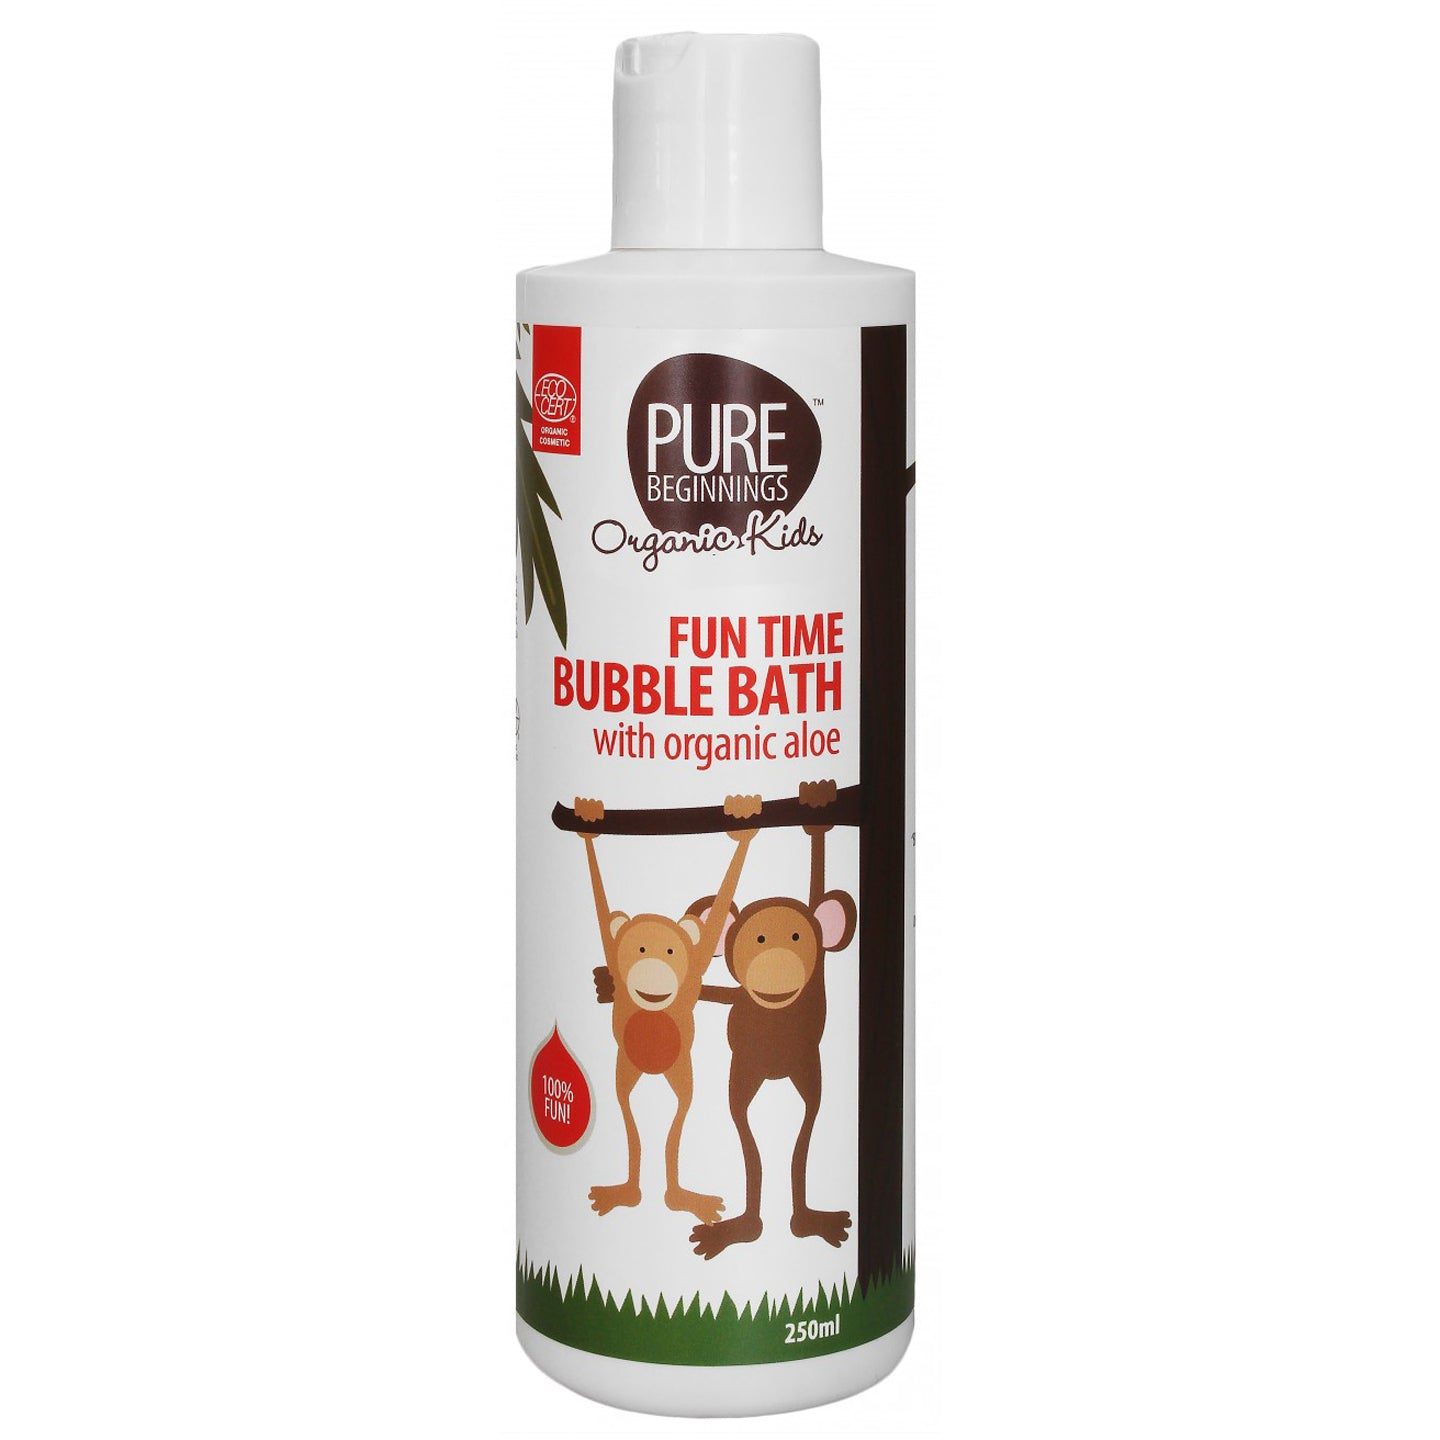 Pure Beginnings Childrens Bubble Bath